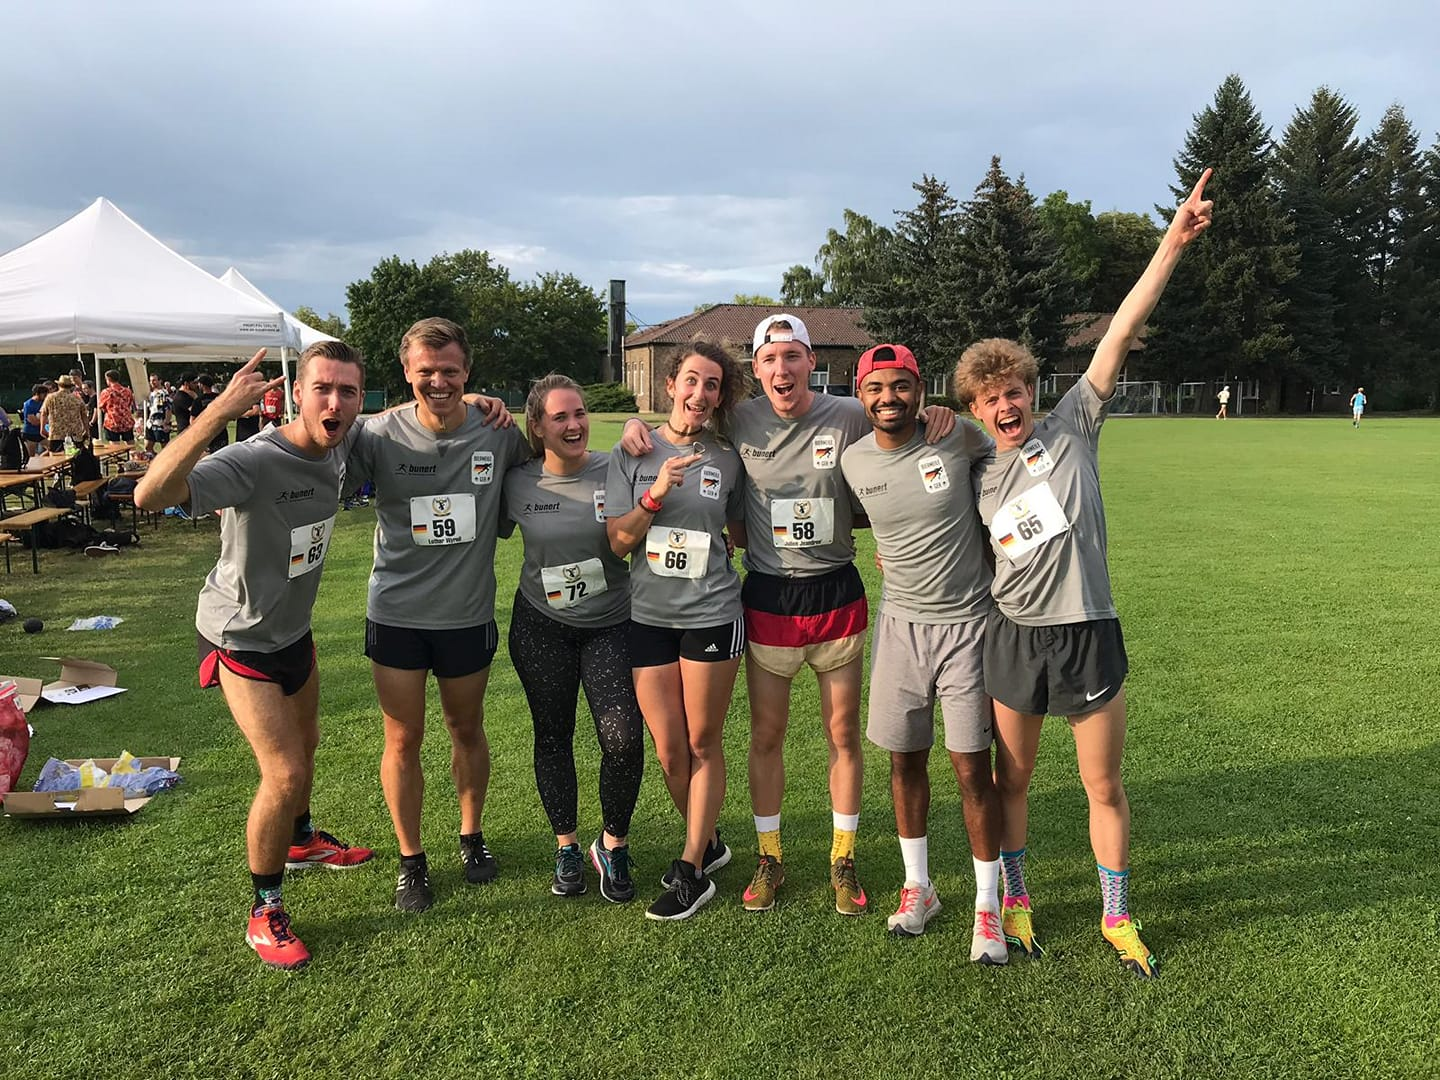 German Beer Mile Team